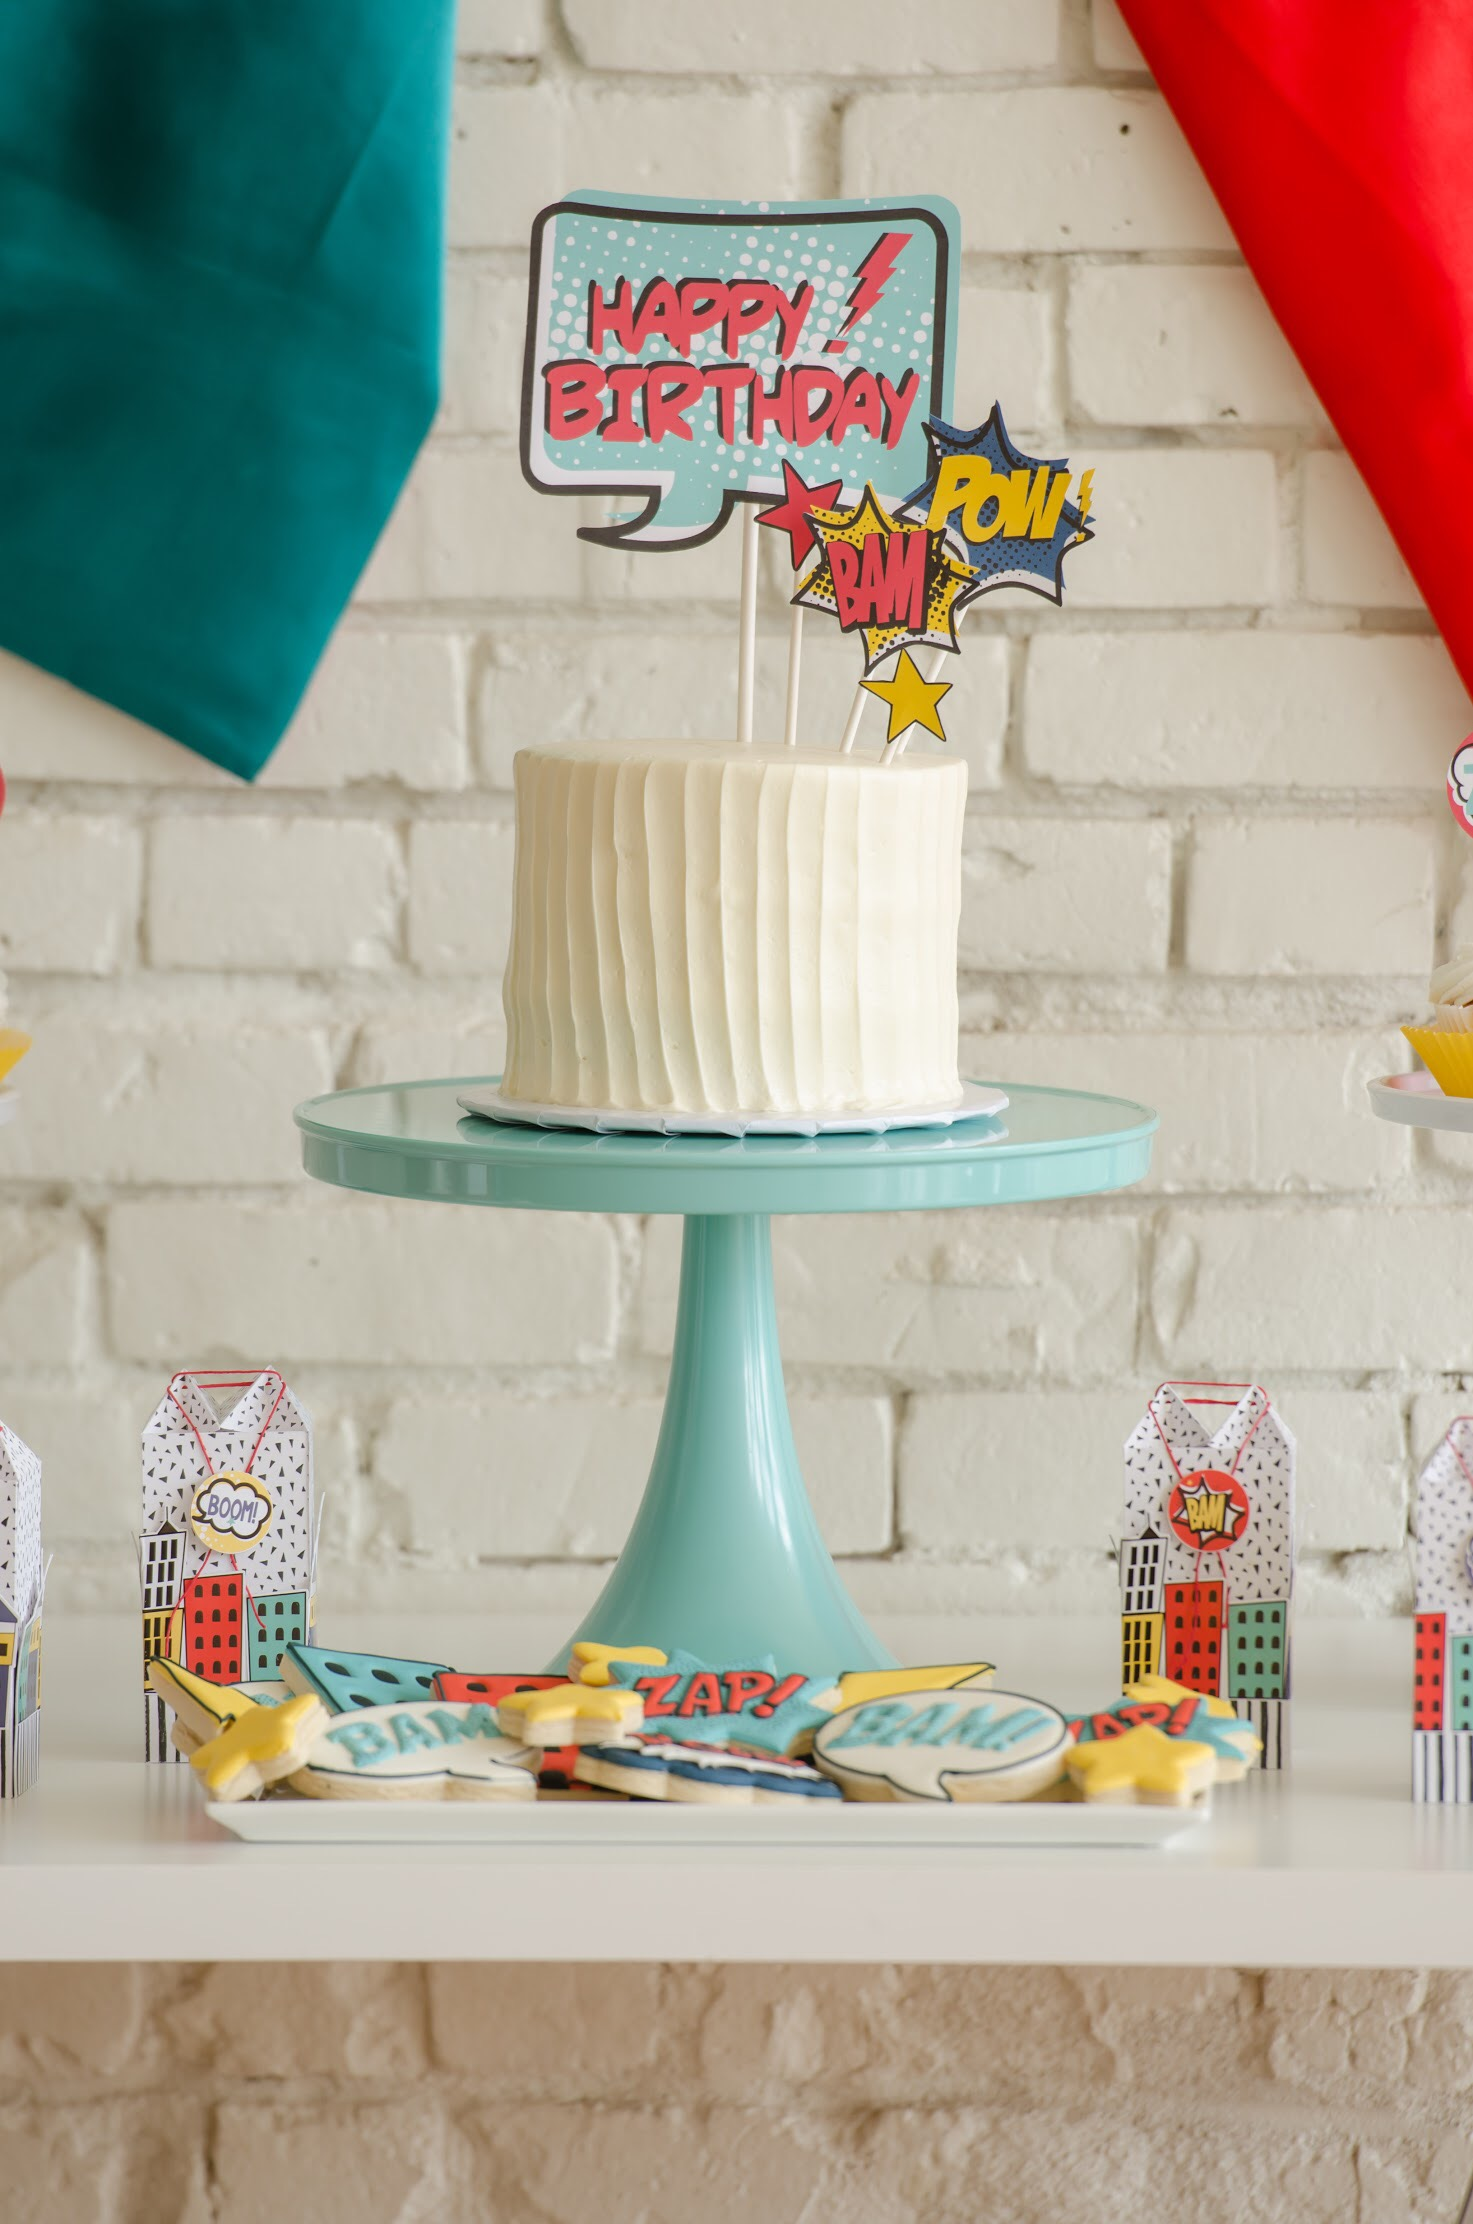 Free Printable Superhero cake topper and superhero party ideas from Mint Event Design